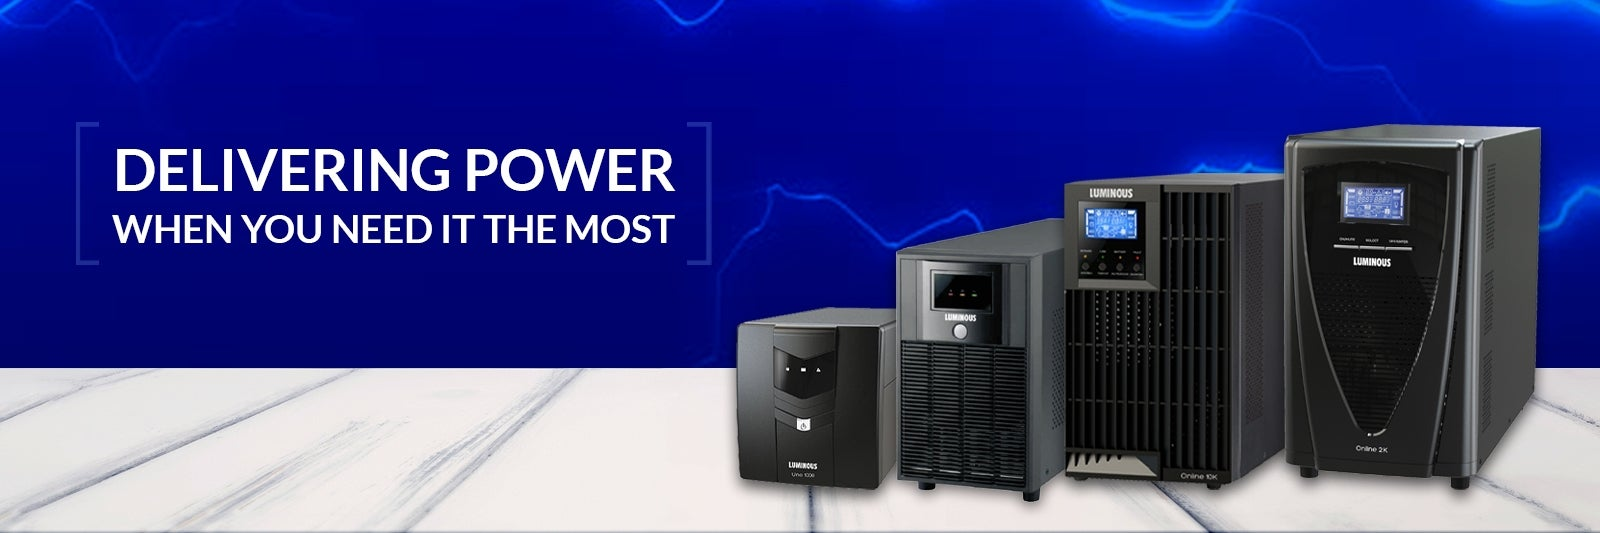 Delivering power when you need it the more